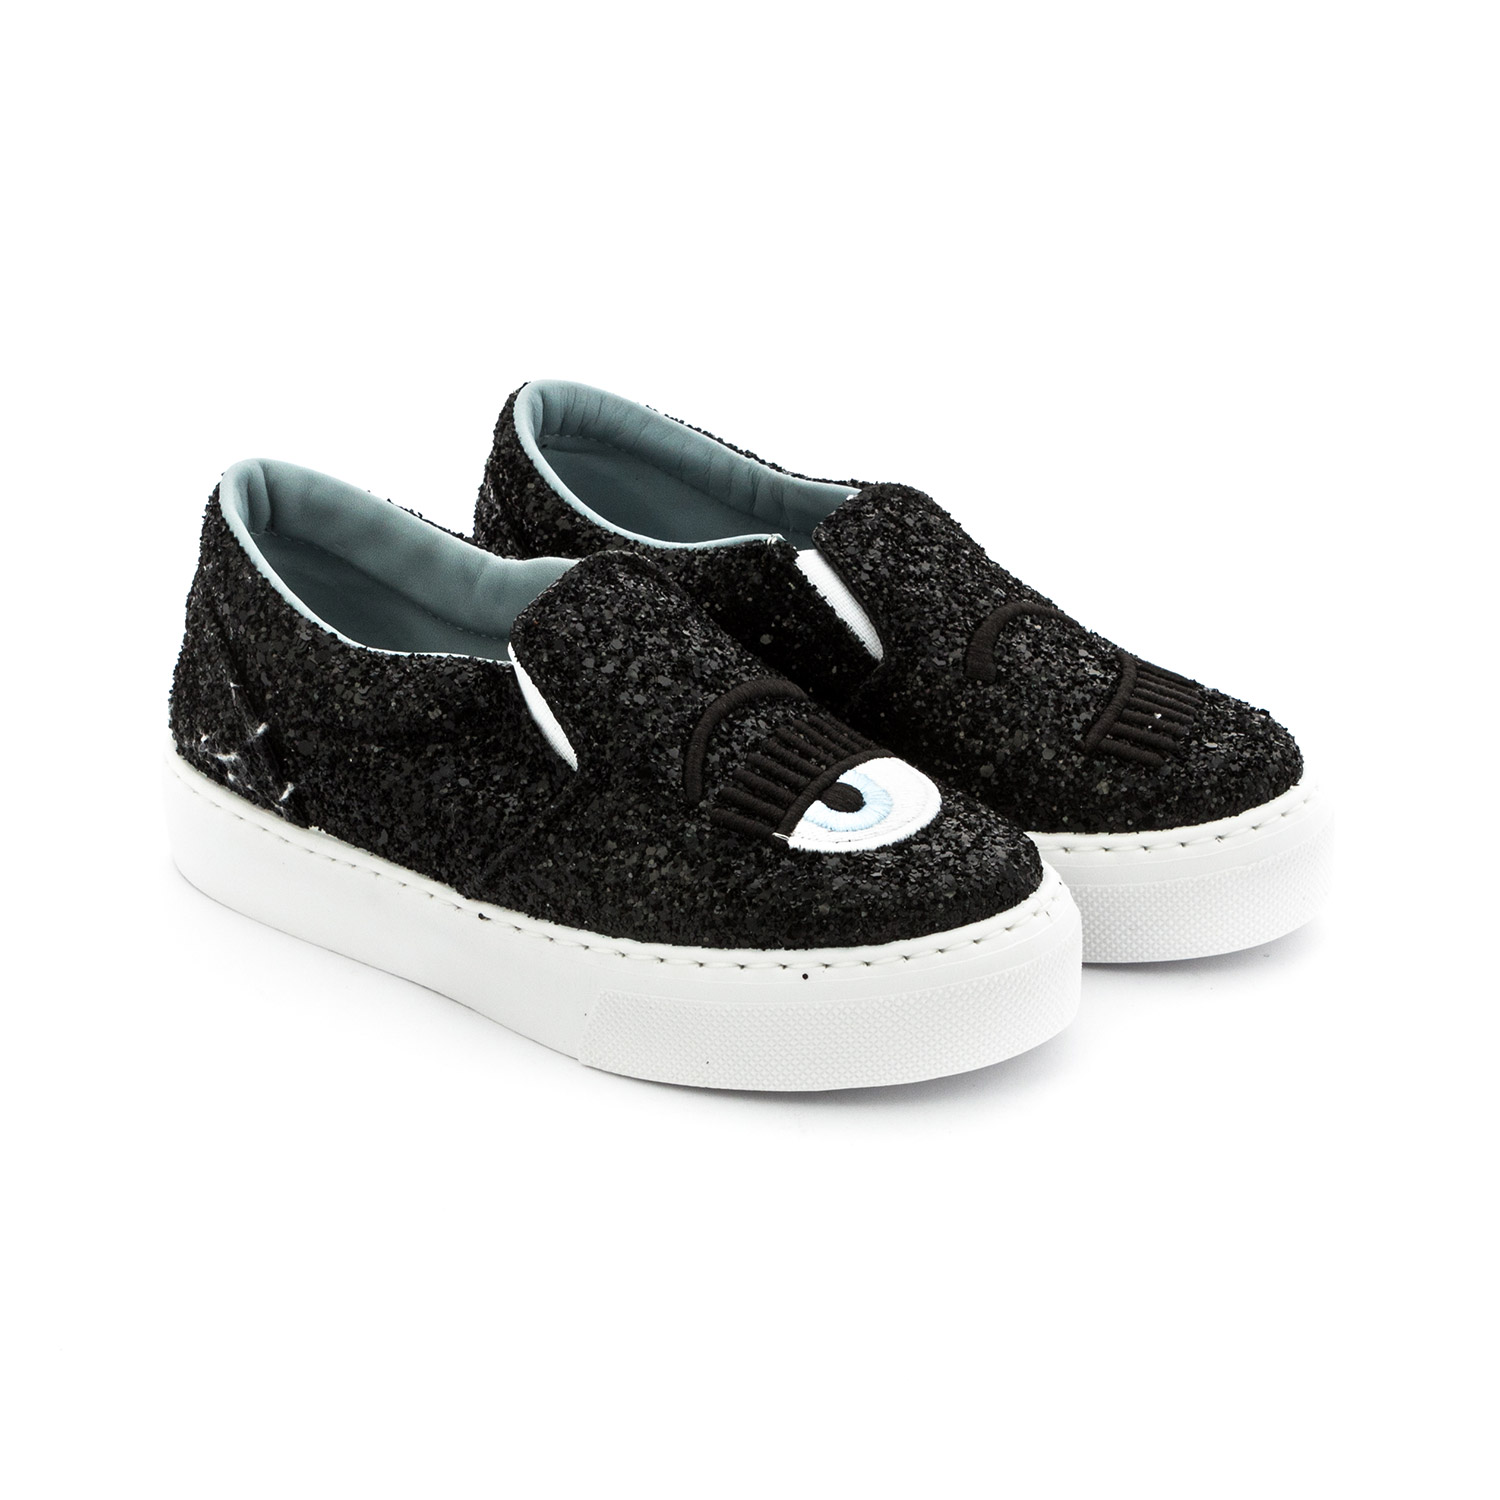 sports shoes d36dc 2bce0 Black Slip-On Sneakers